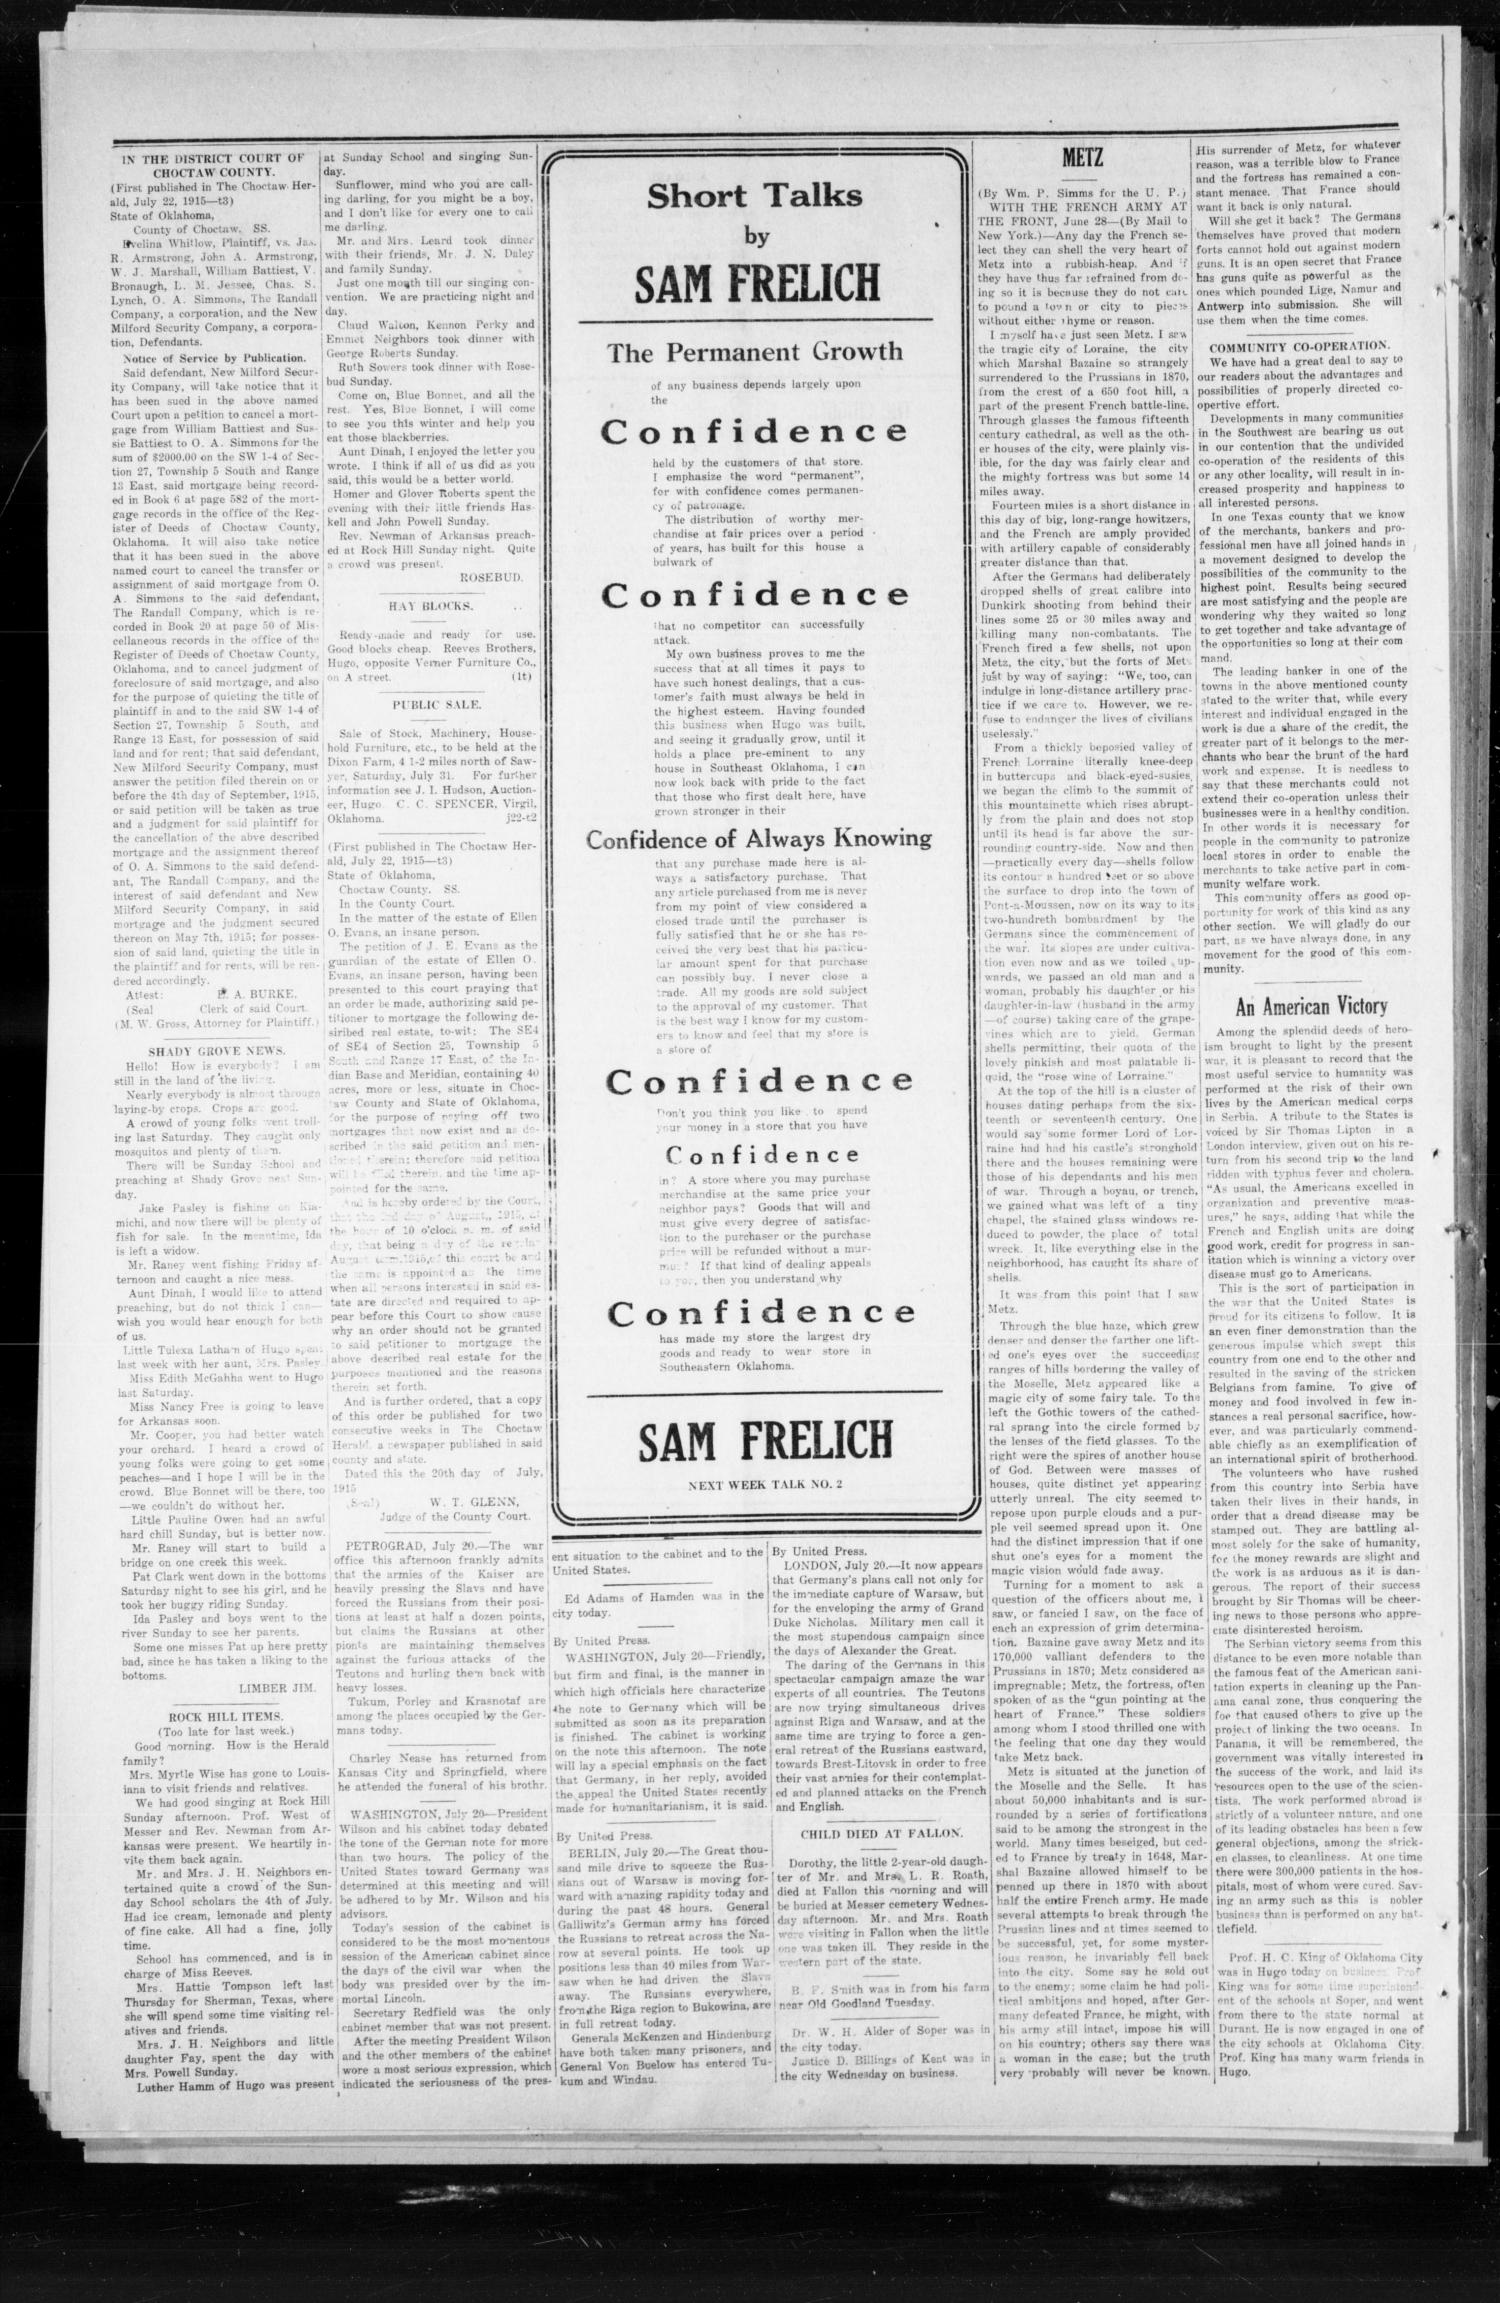 The Choctaw Herald. (Hugo, Okla.), Vol. 9, No. 218, Ed. 1 Thursday, July 22, 1915                                                                                                      [Sequence #]: 4 of 4